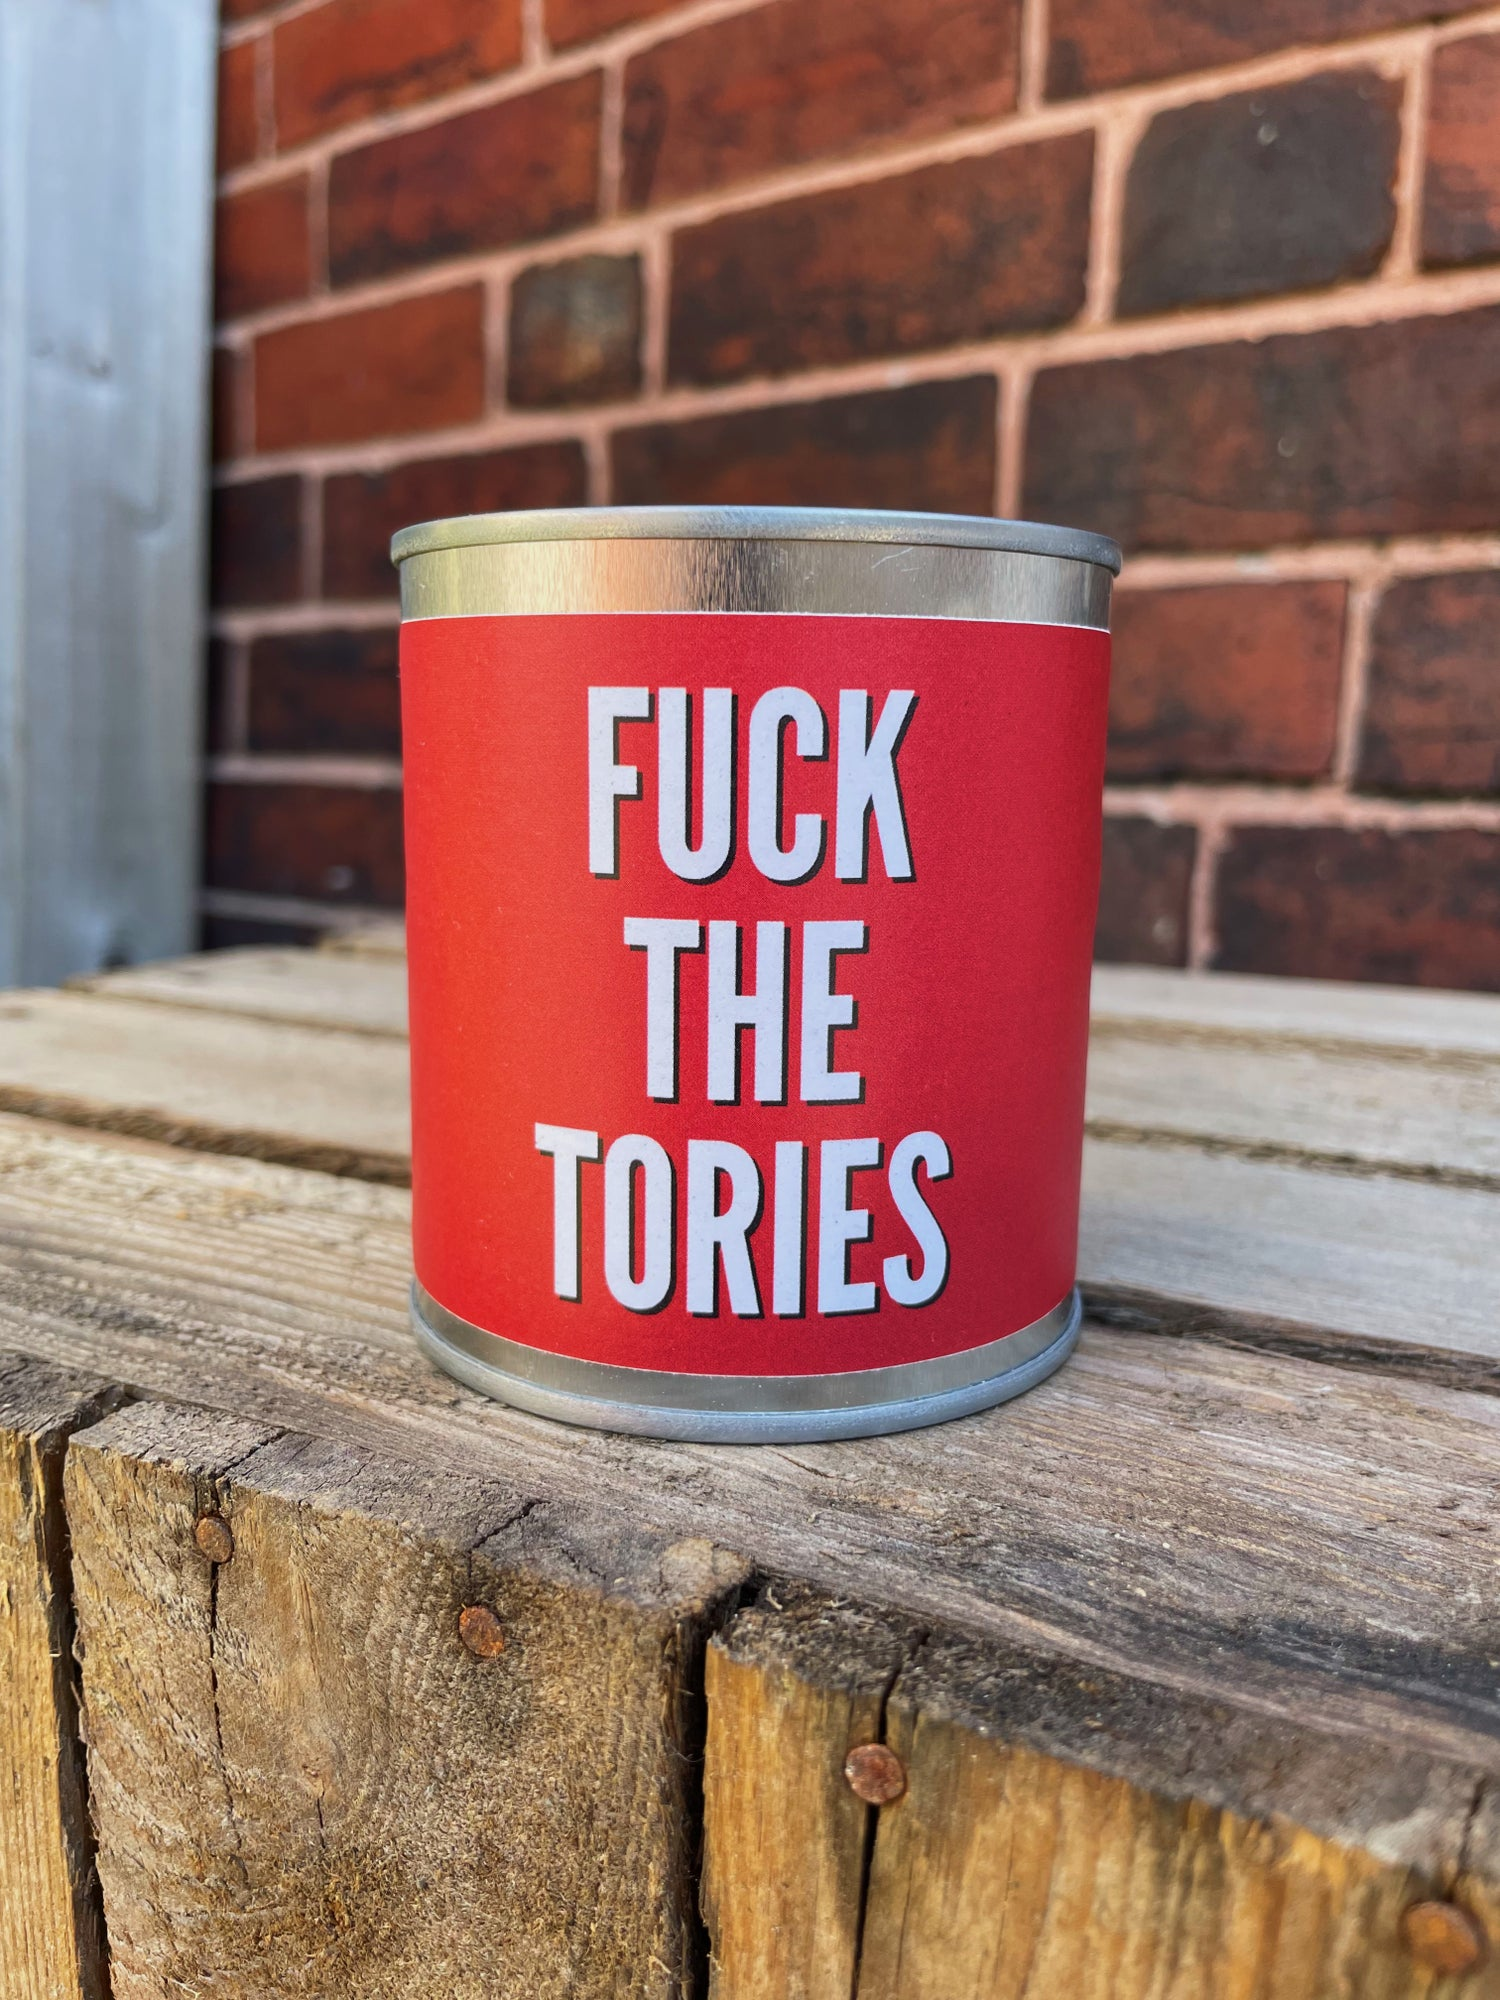 'Fuck The Tories' Candle